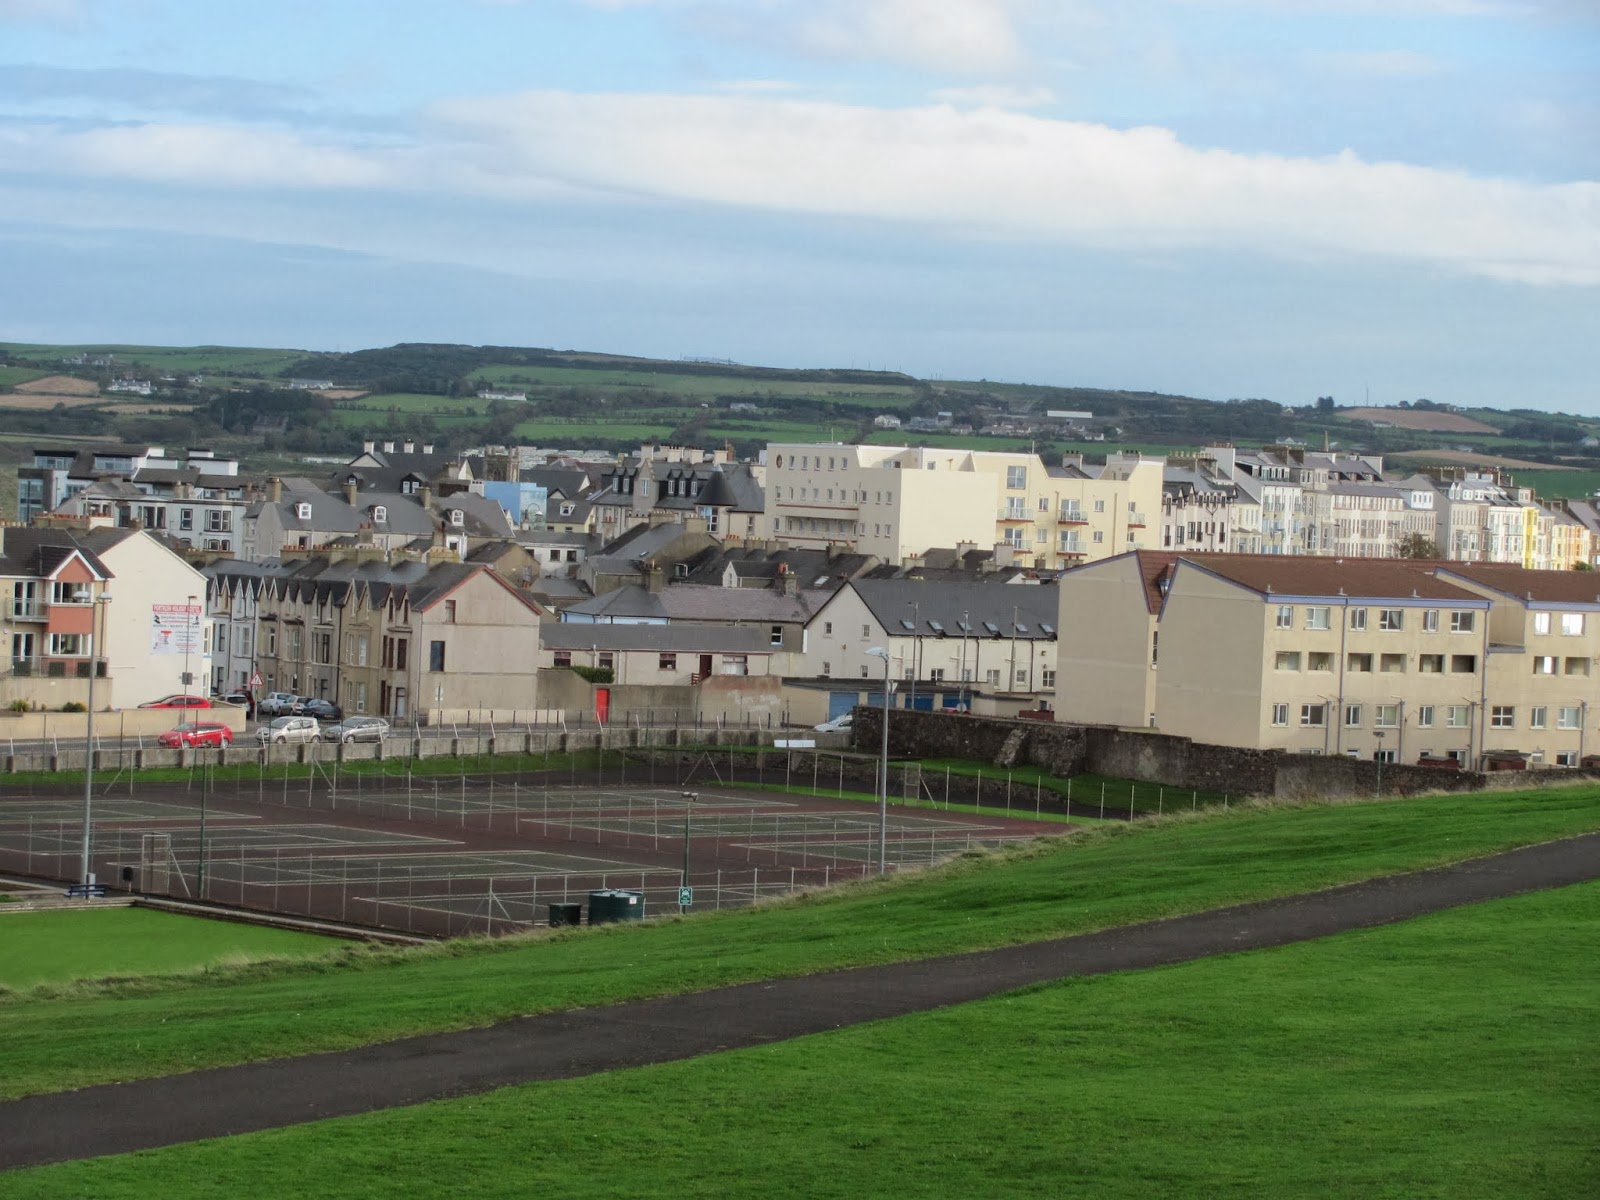 From the North tip, the whole city and peninsula is visible in Portrush, Northern Ireland